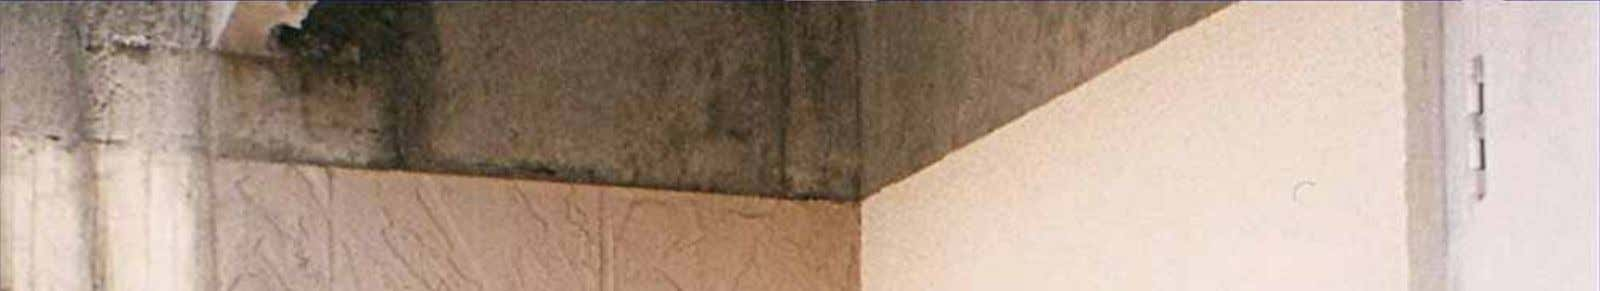 If Required, Rigid Insulation (Polystyrene) Can Be Fastened to External Concrete Surface. Mesh & Then